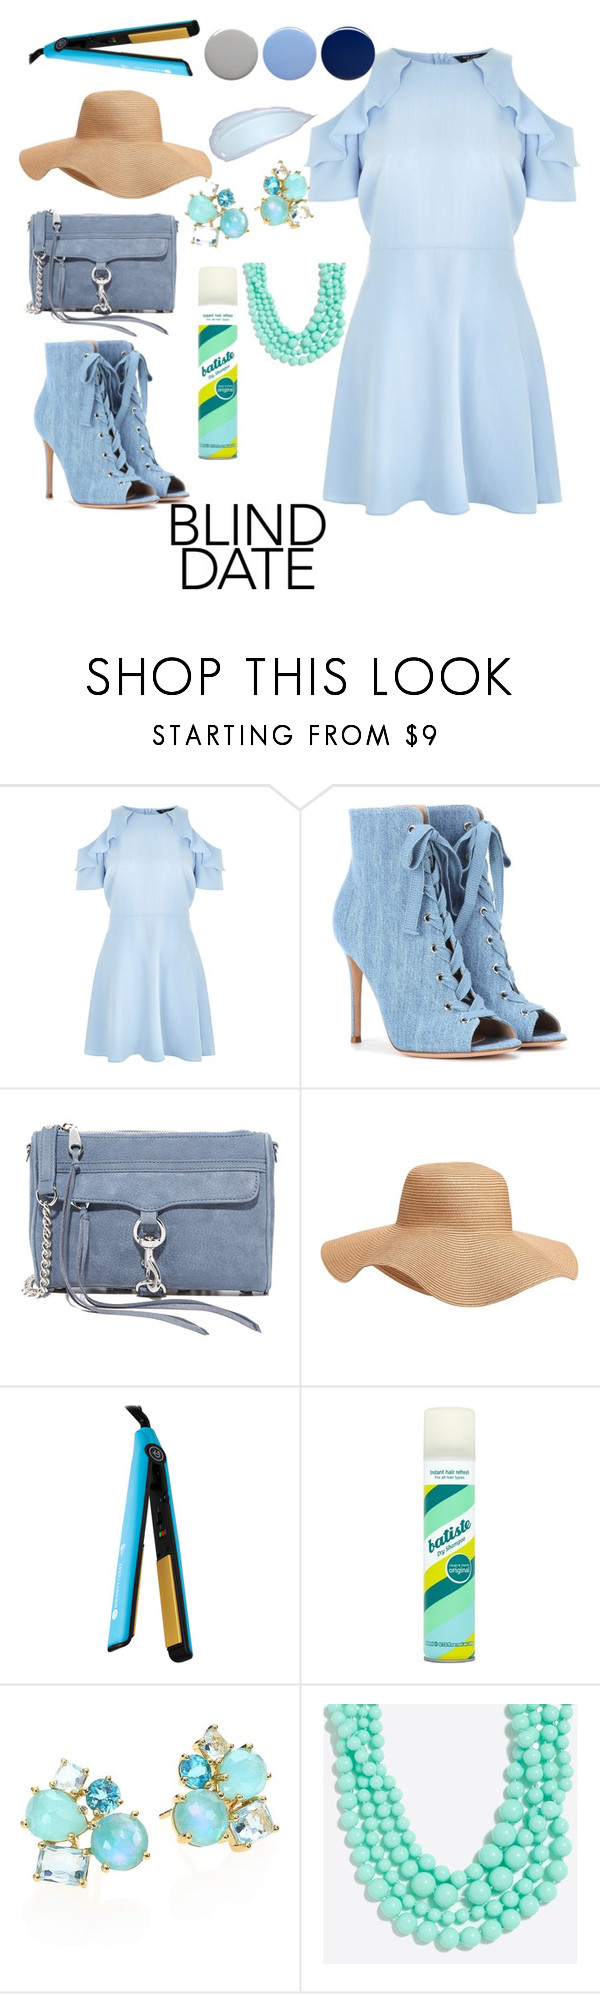 """""""Dress to Impress"""" by stephanie-barnett ❤ liked on Polyvore featuring New Look, Gianvito Rossi, Rebecca Minkoff, Old Navy, Royale, Batiste, Ippolita, J.Crew and Burberry"""